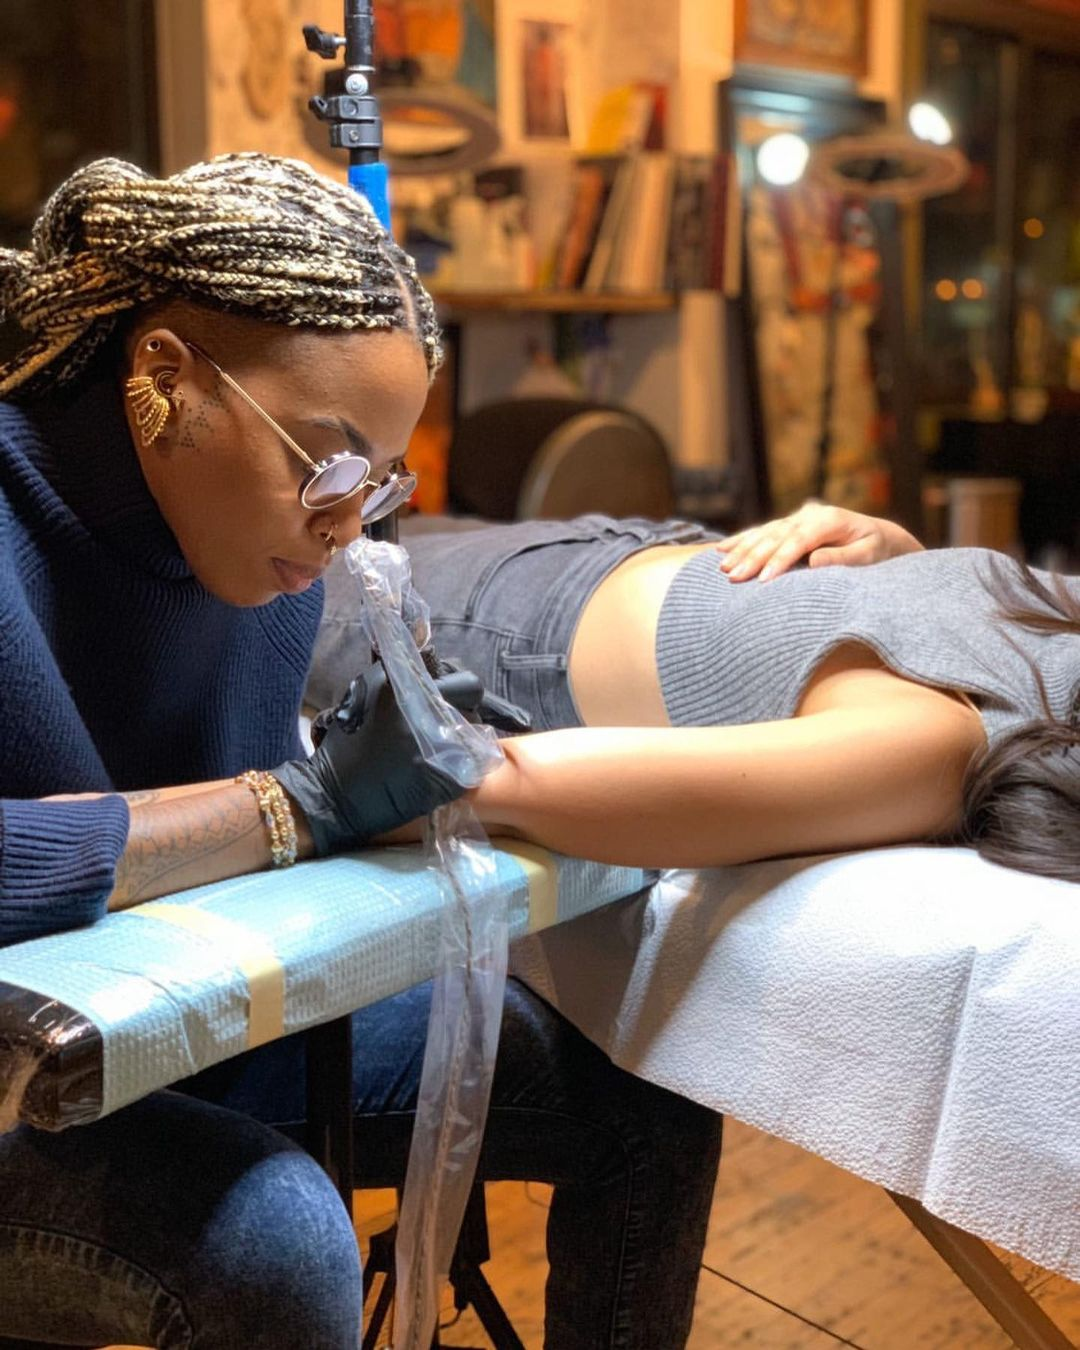 First Tattoo Tips: Advice for Beginners From Tattoo Artists